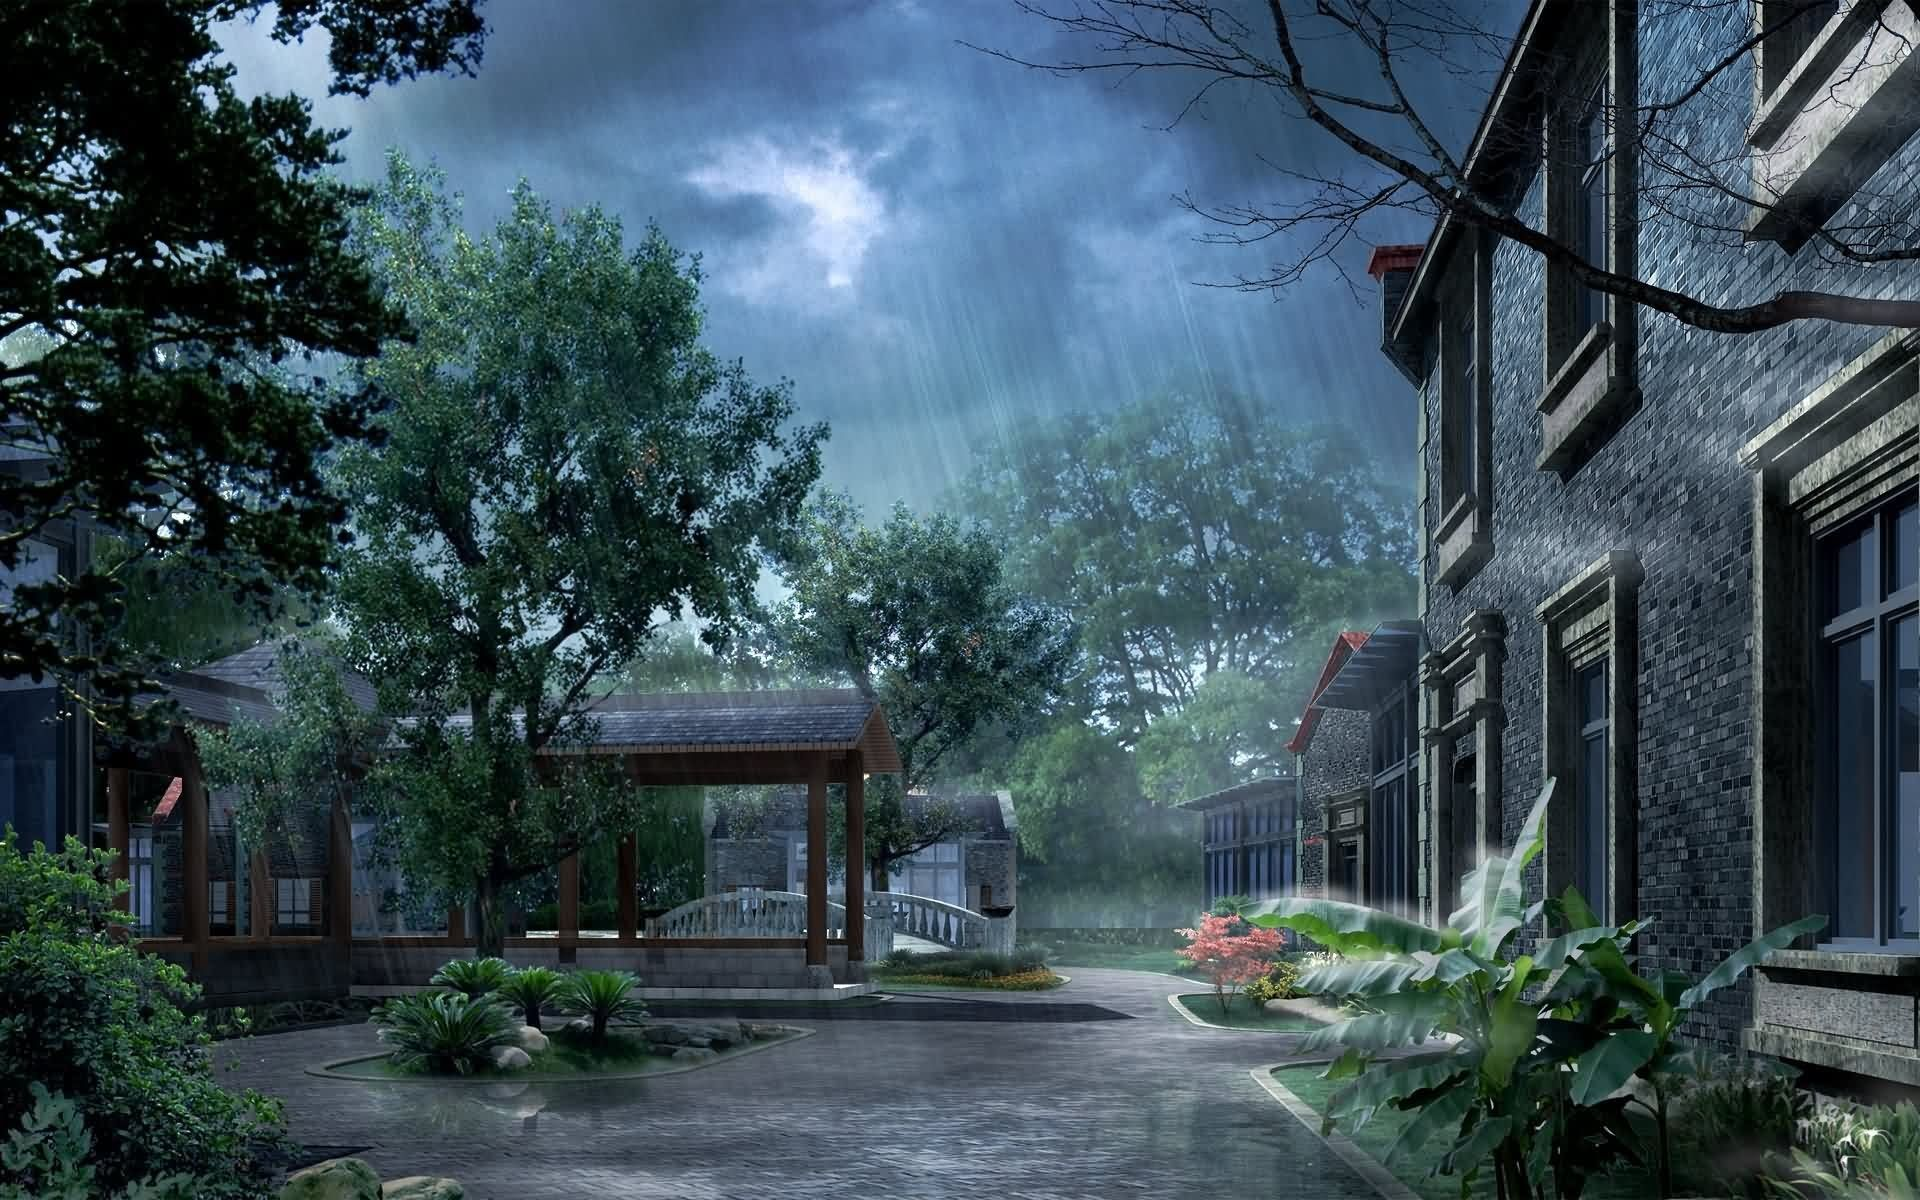 Image-result-for-bad-weather-in-nature-1920x1080p-wallpaper-wp3407304